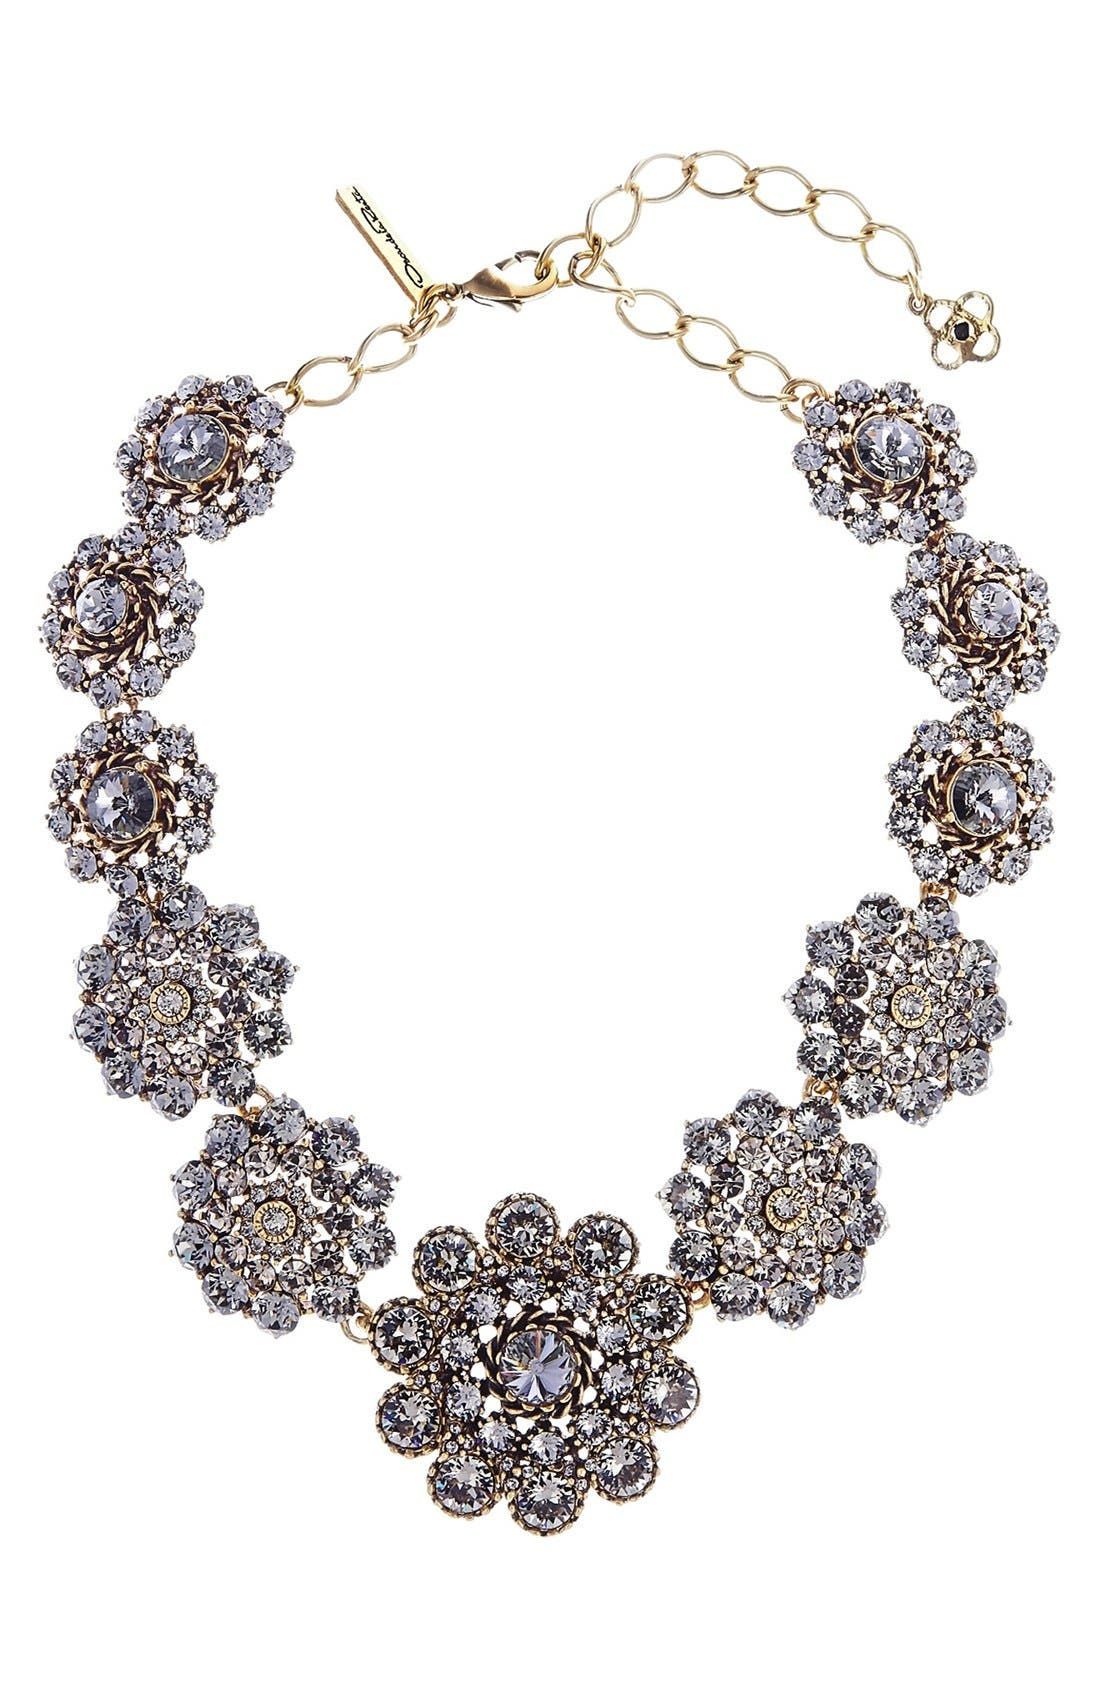 Main Image - Oscar de la Renta Swarovski Crystal Collar Necklace